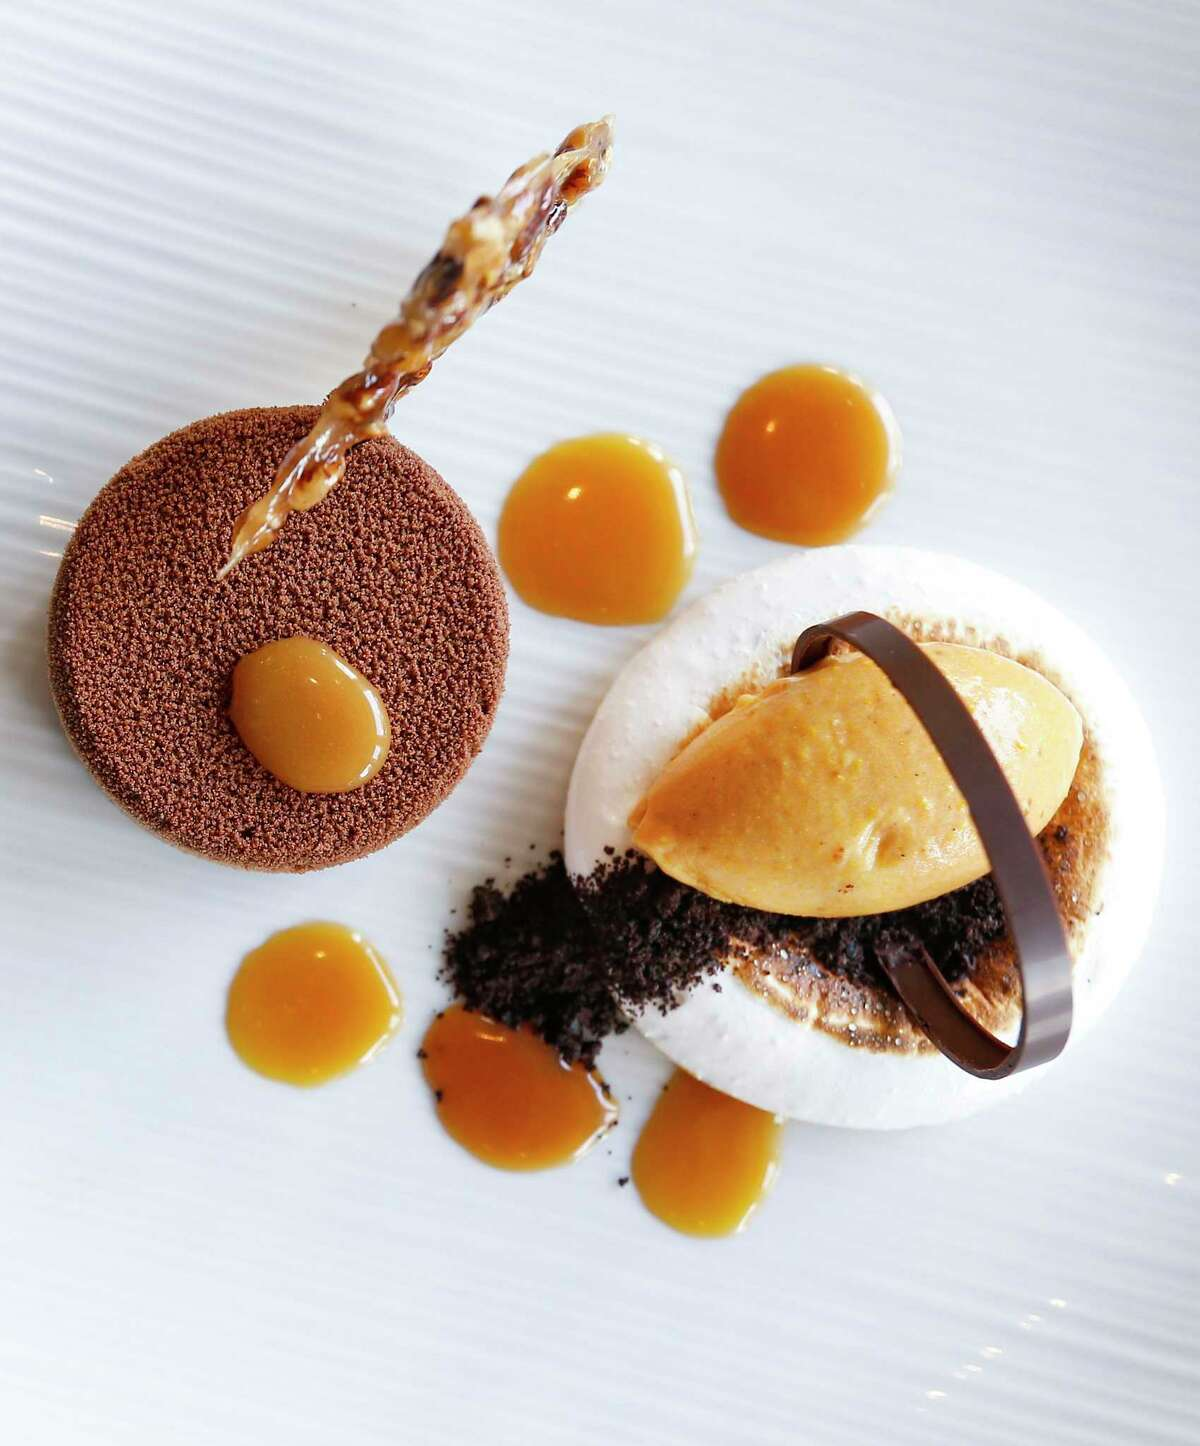 Pastel de Chocolate Criollo at Caracol is a chocolate mousse with bourbon-toffee sauce and toasted meringue served with pumpkin-orange ice cream.